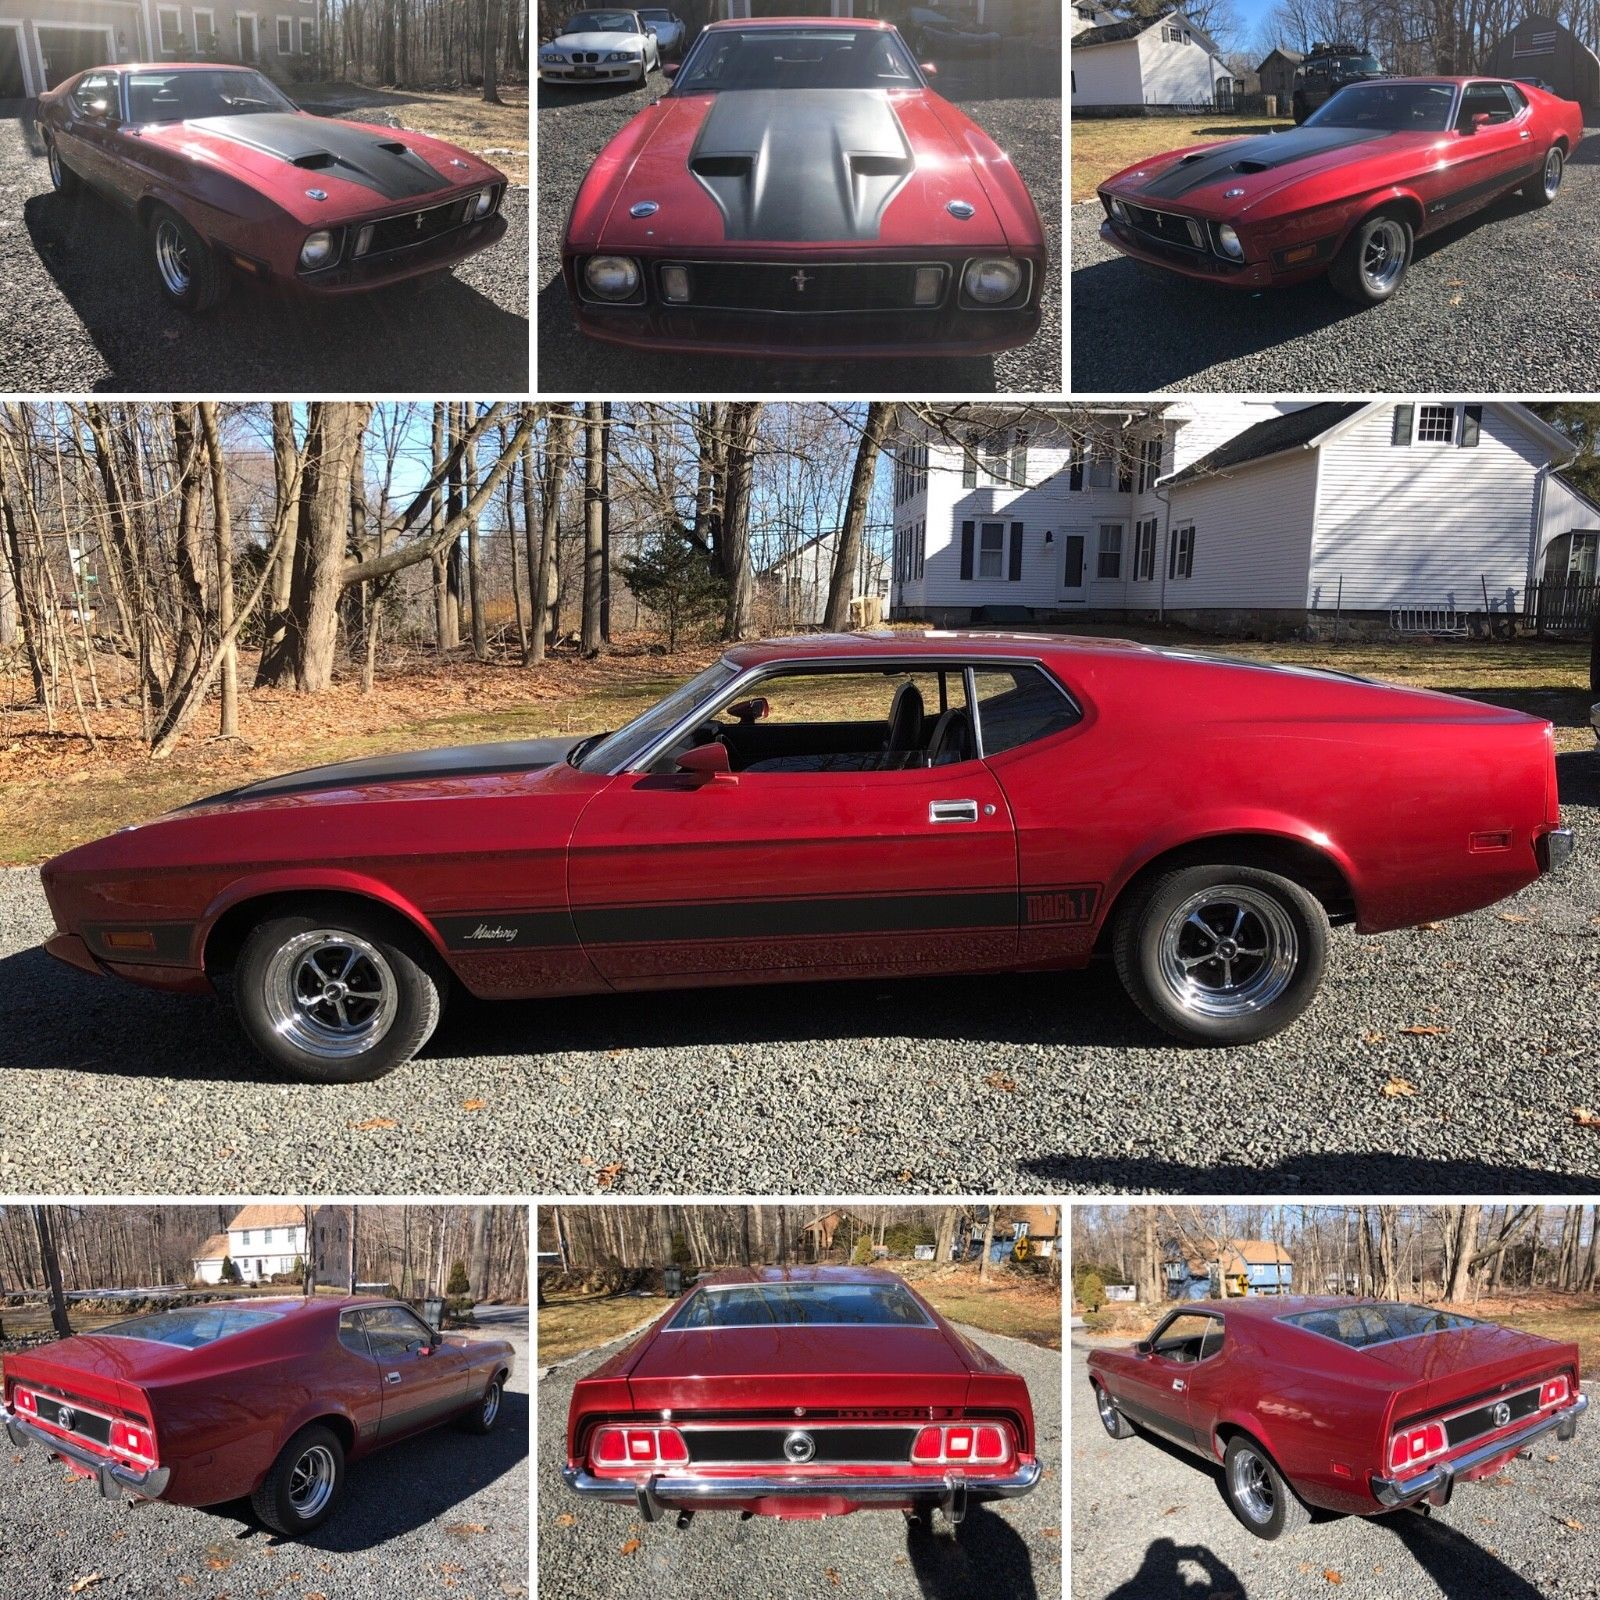 Amazing 1973 ford mustang mach 1 1973 mustan mach 1 351 cleveland v8 powered runs and drives as good as it looks 2018 2019